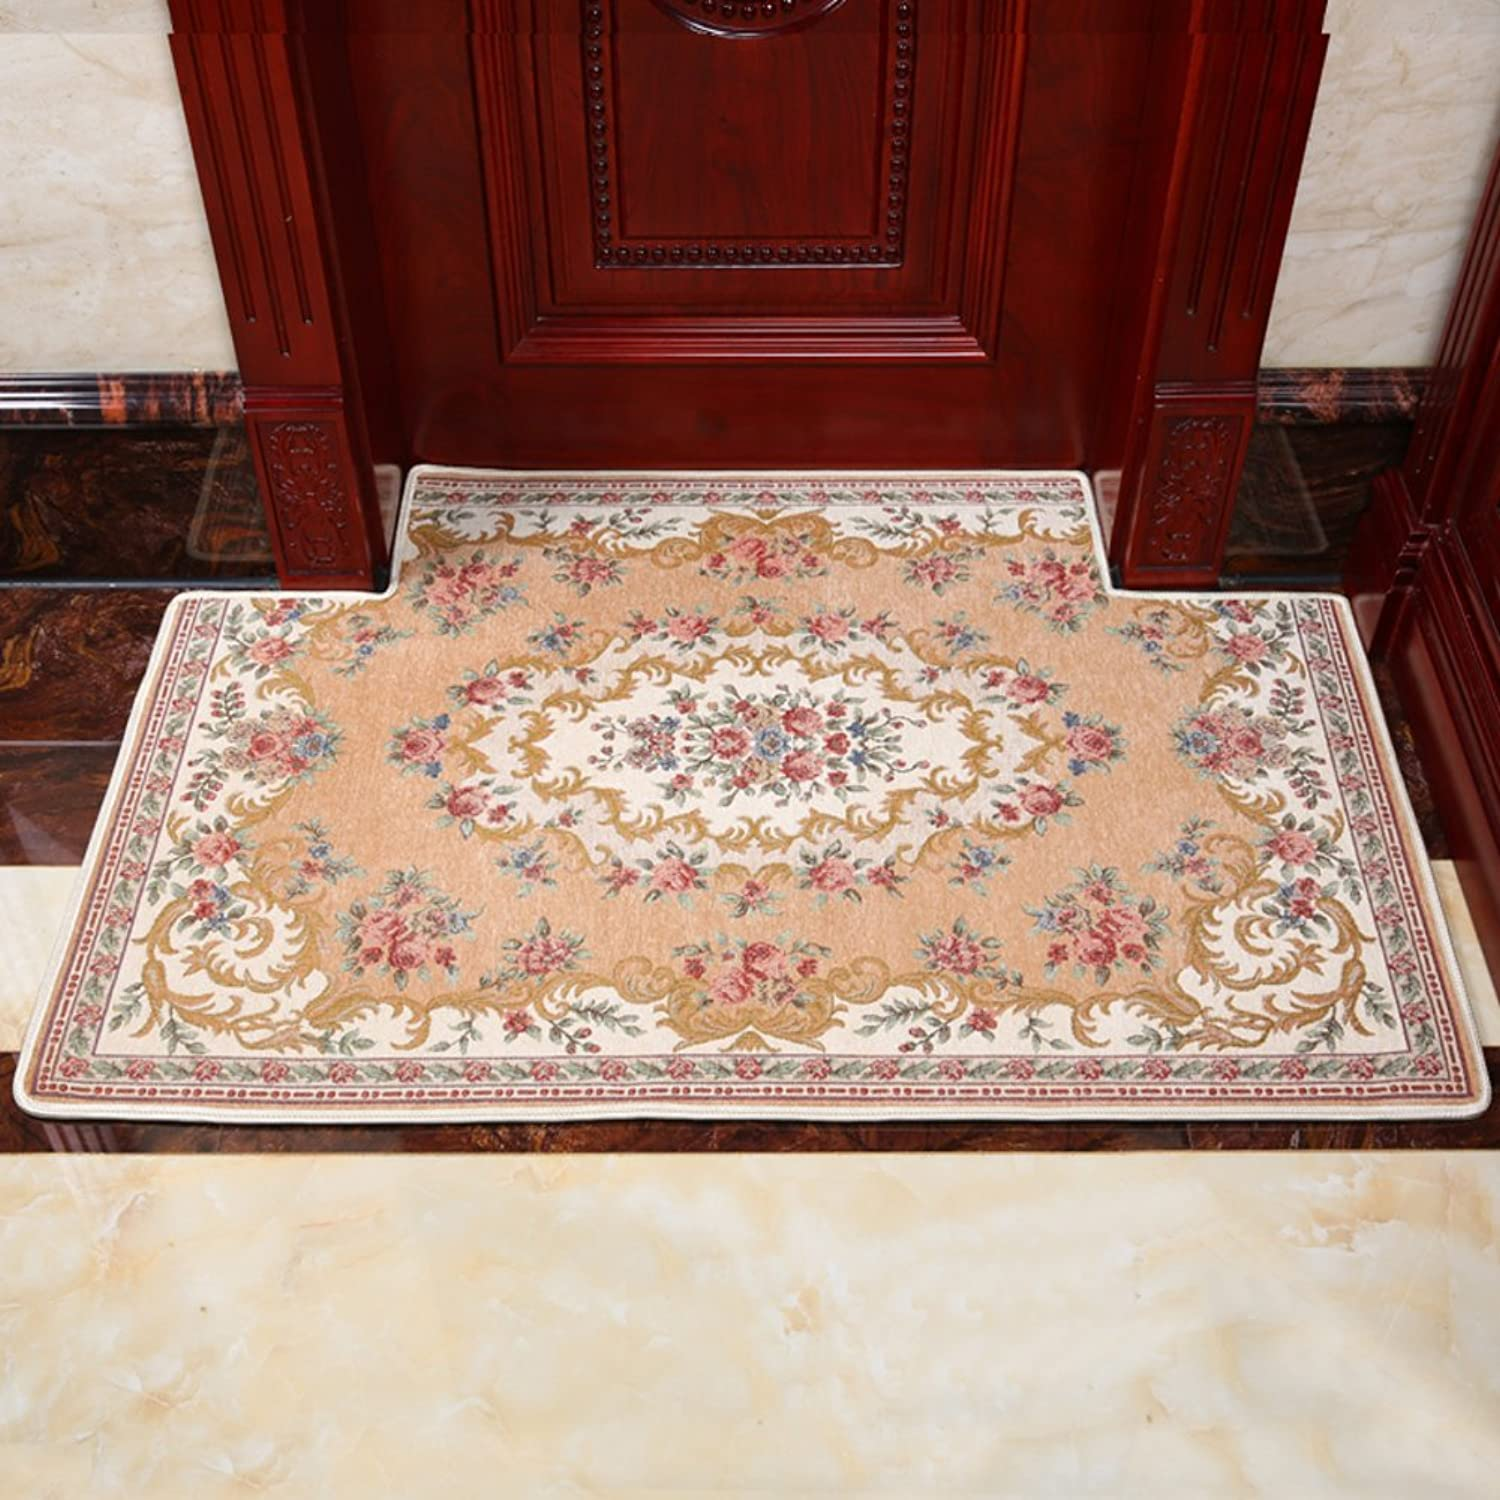 Doormat European-Style Floor mats Doormat Foot pad Door,Entrance,[Hall],Living Room,Kitchen,Bedroom,The Door,Household use,Non-Slipping mats-L 90x140cm(35x55inch)